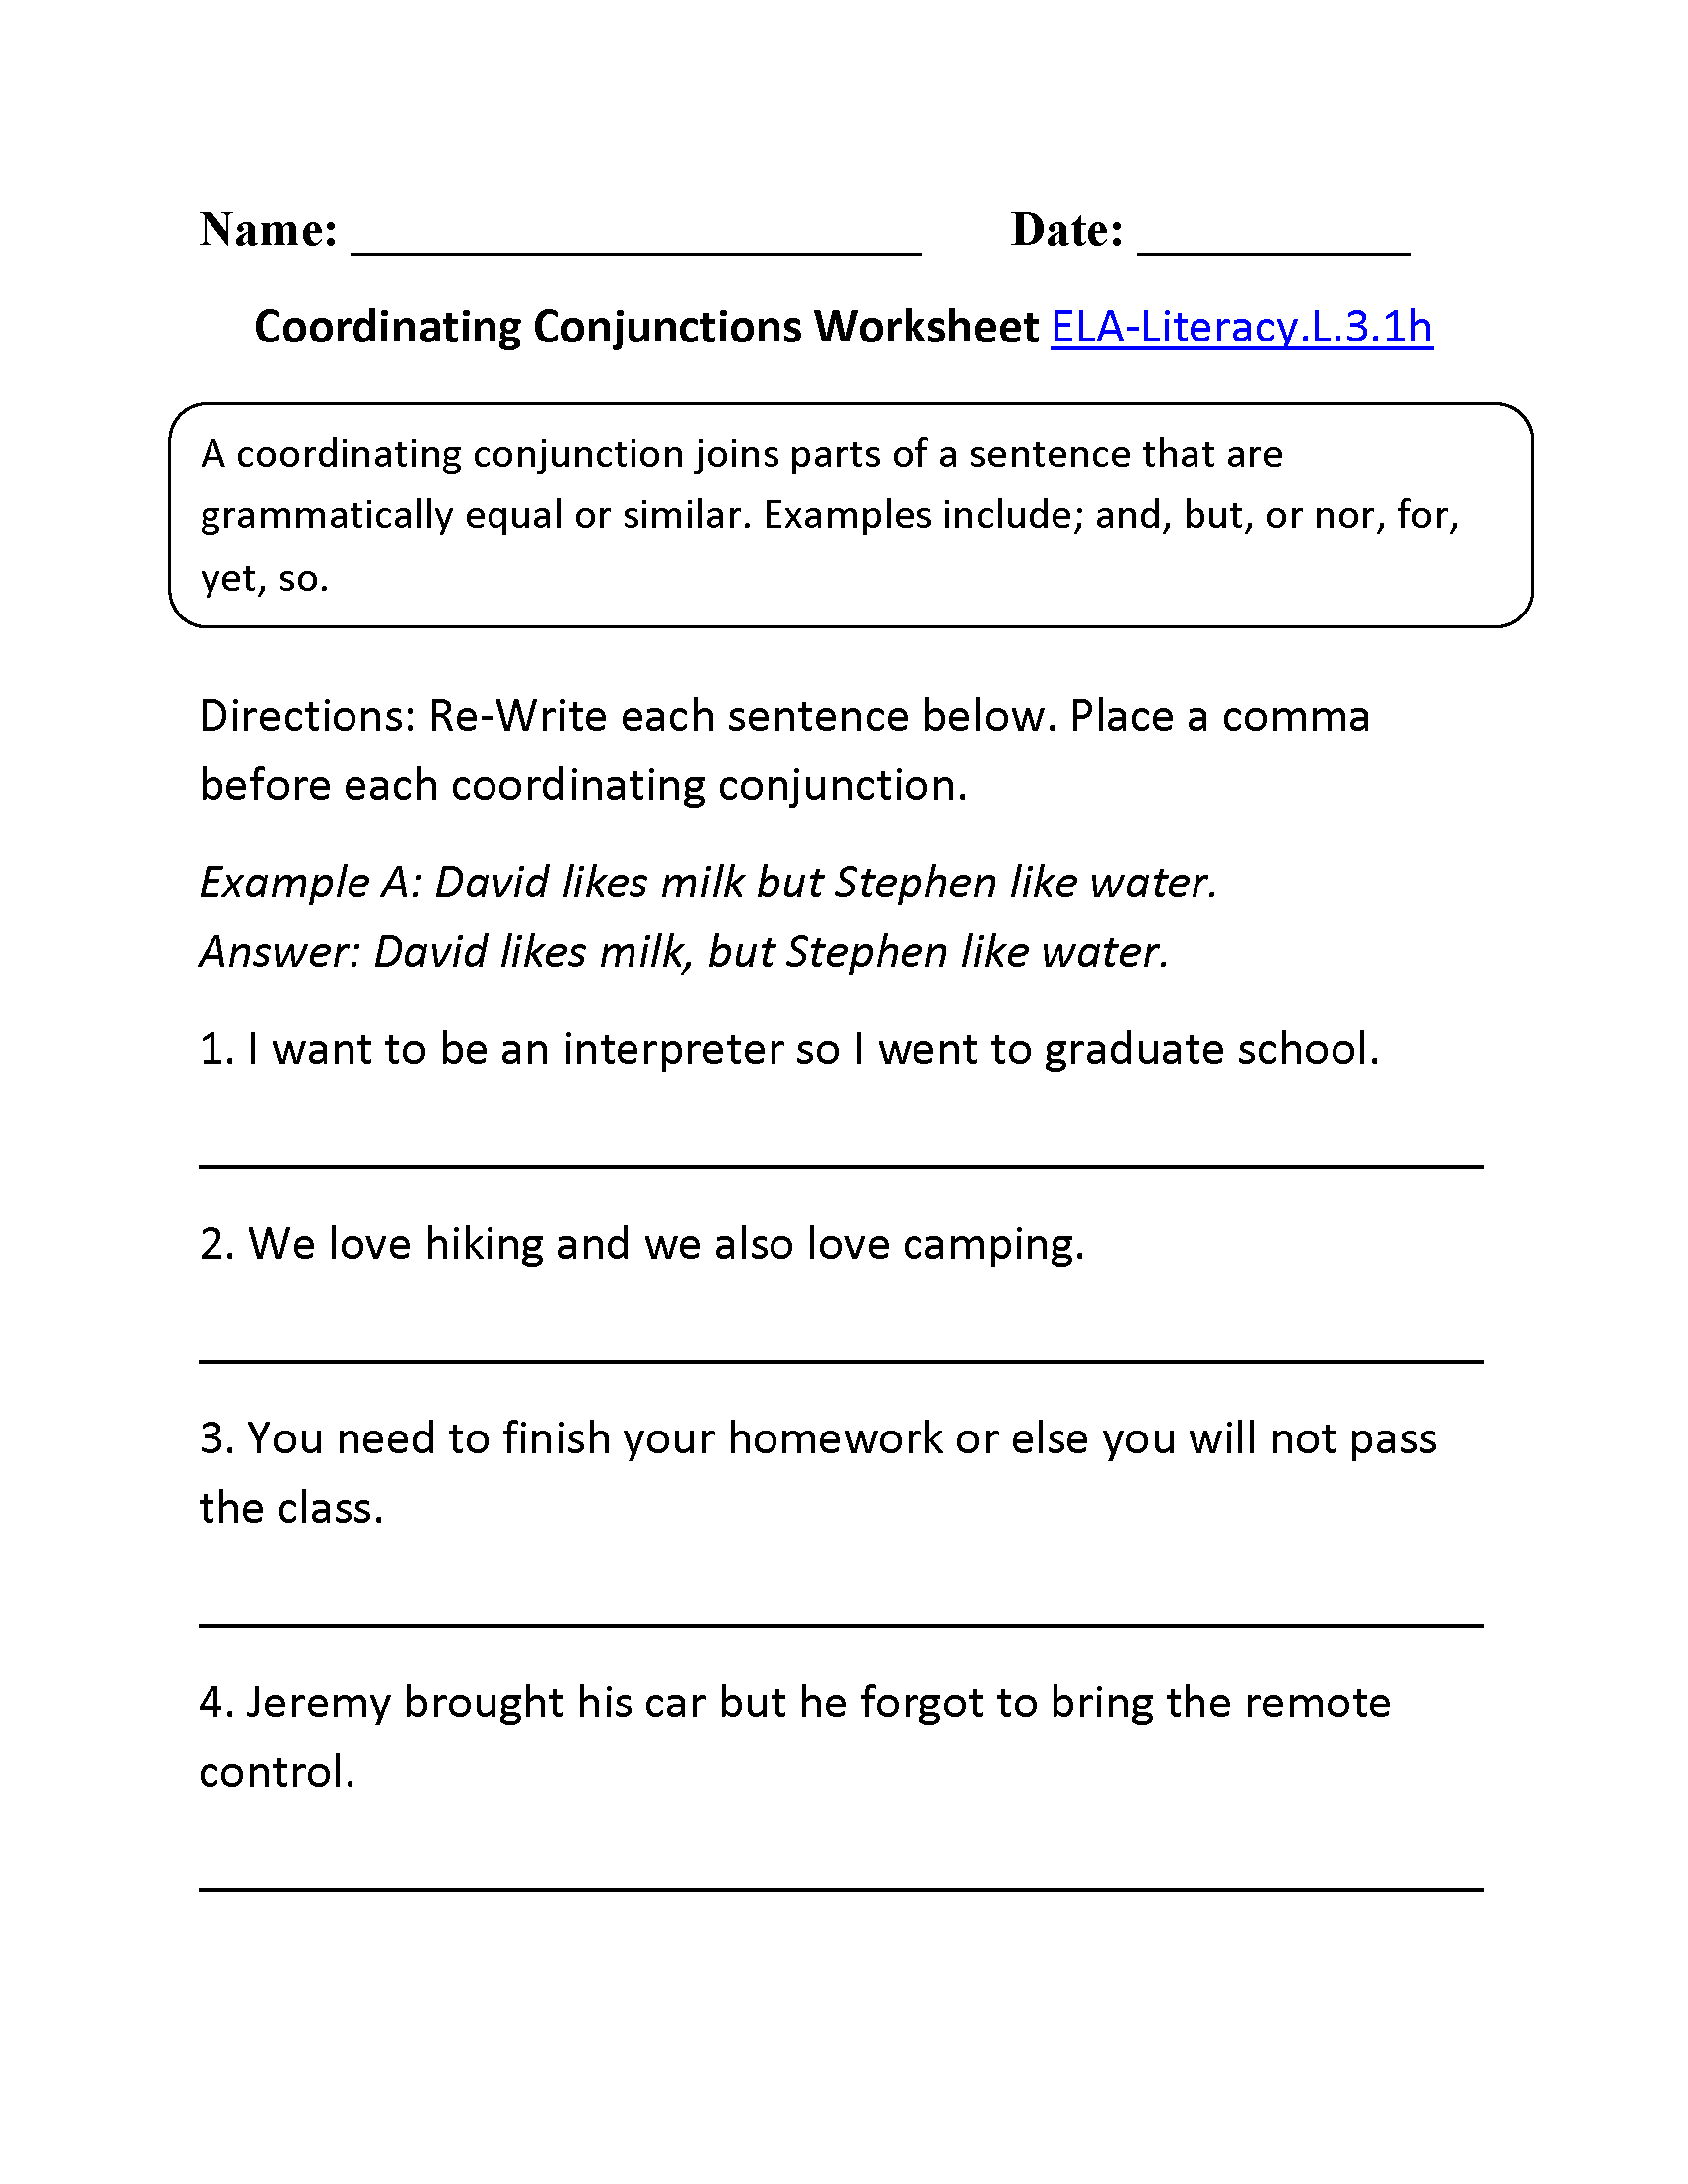 Coordinating Conjunctions Worksheet 2 L 3 1